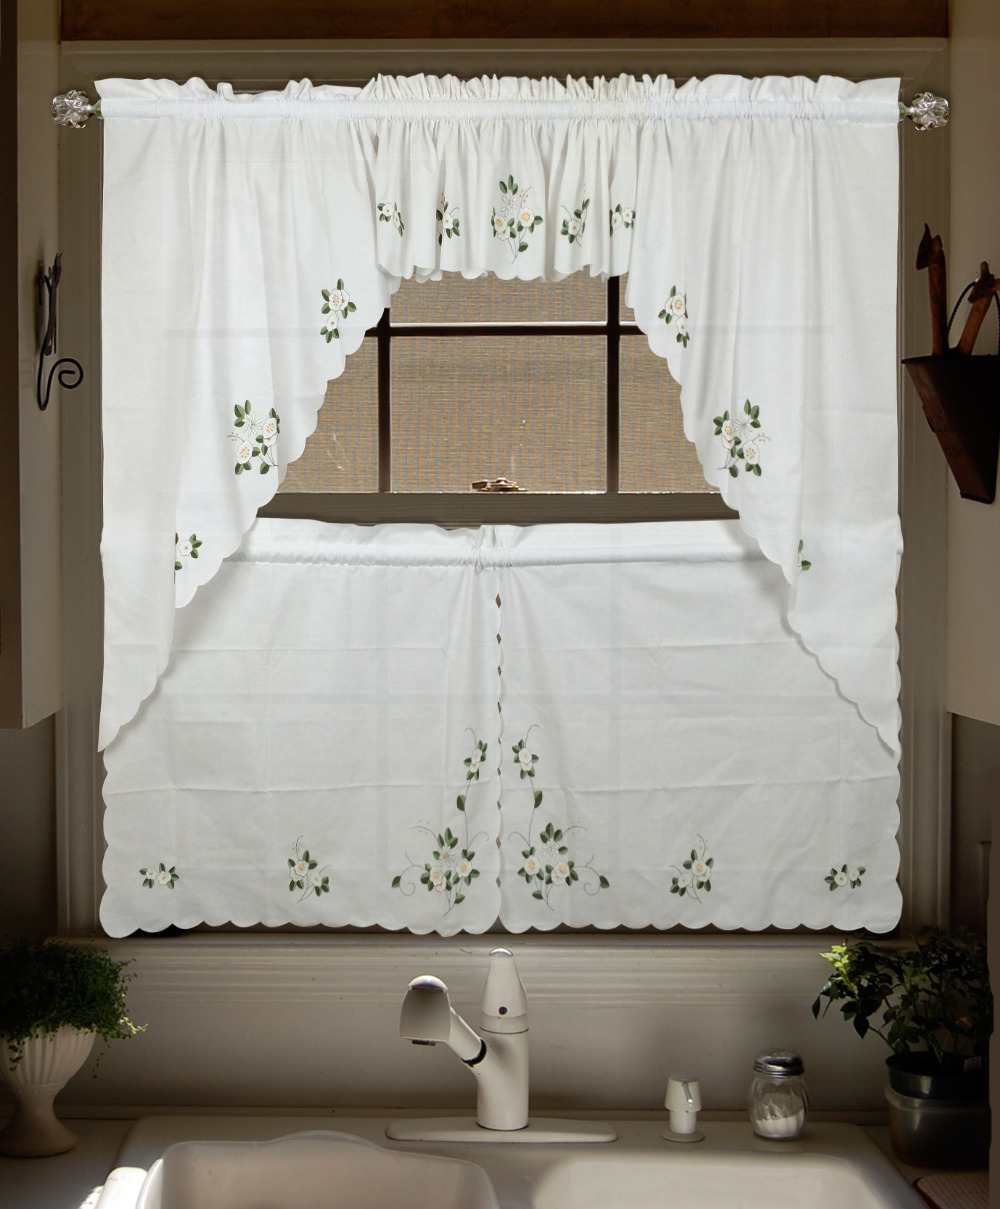 Cafe curtains for bedroom - Upscale Lu Embroidered Valance Curtains Swag And Tier Set Window Curtain For Kitchen Door Bedroom